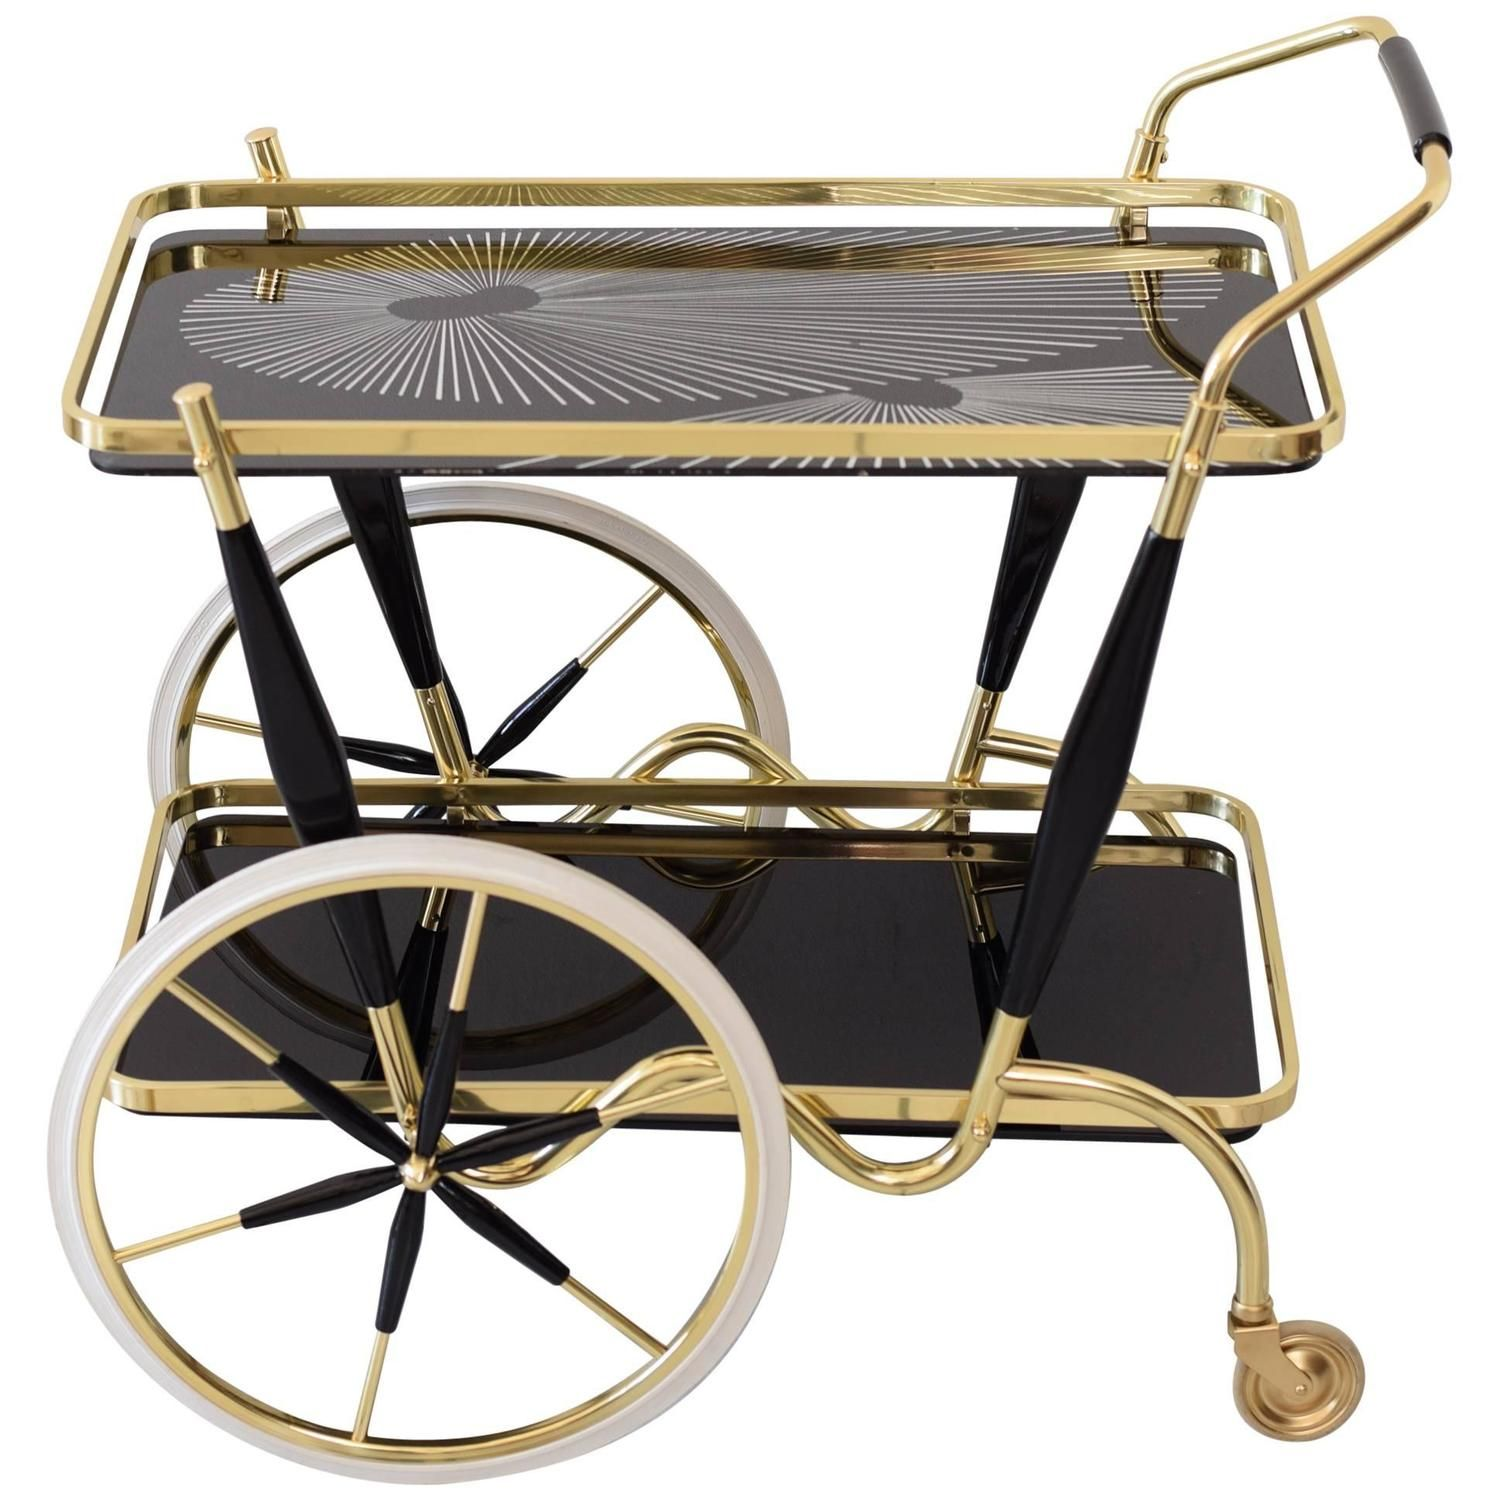 Mid 20Th Italian Trolley Bar Cart, Italy, 1950 - From A